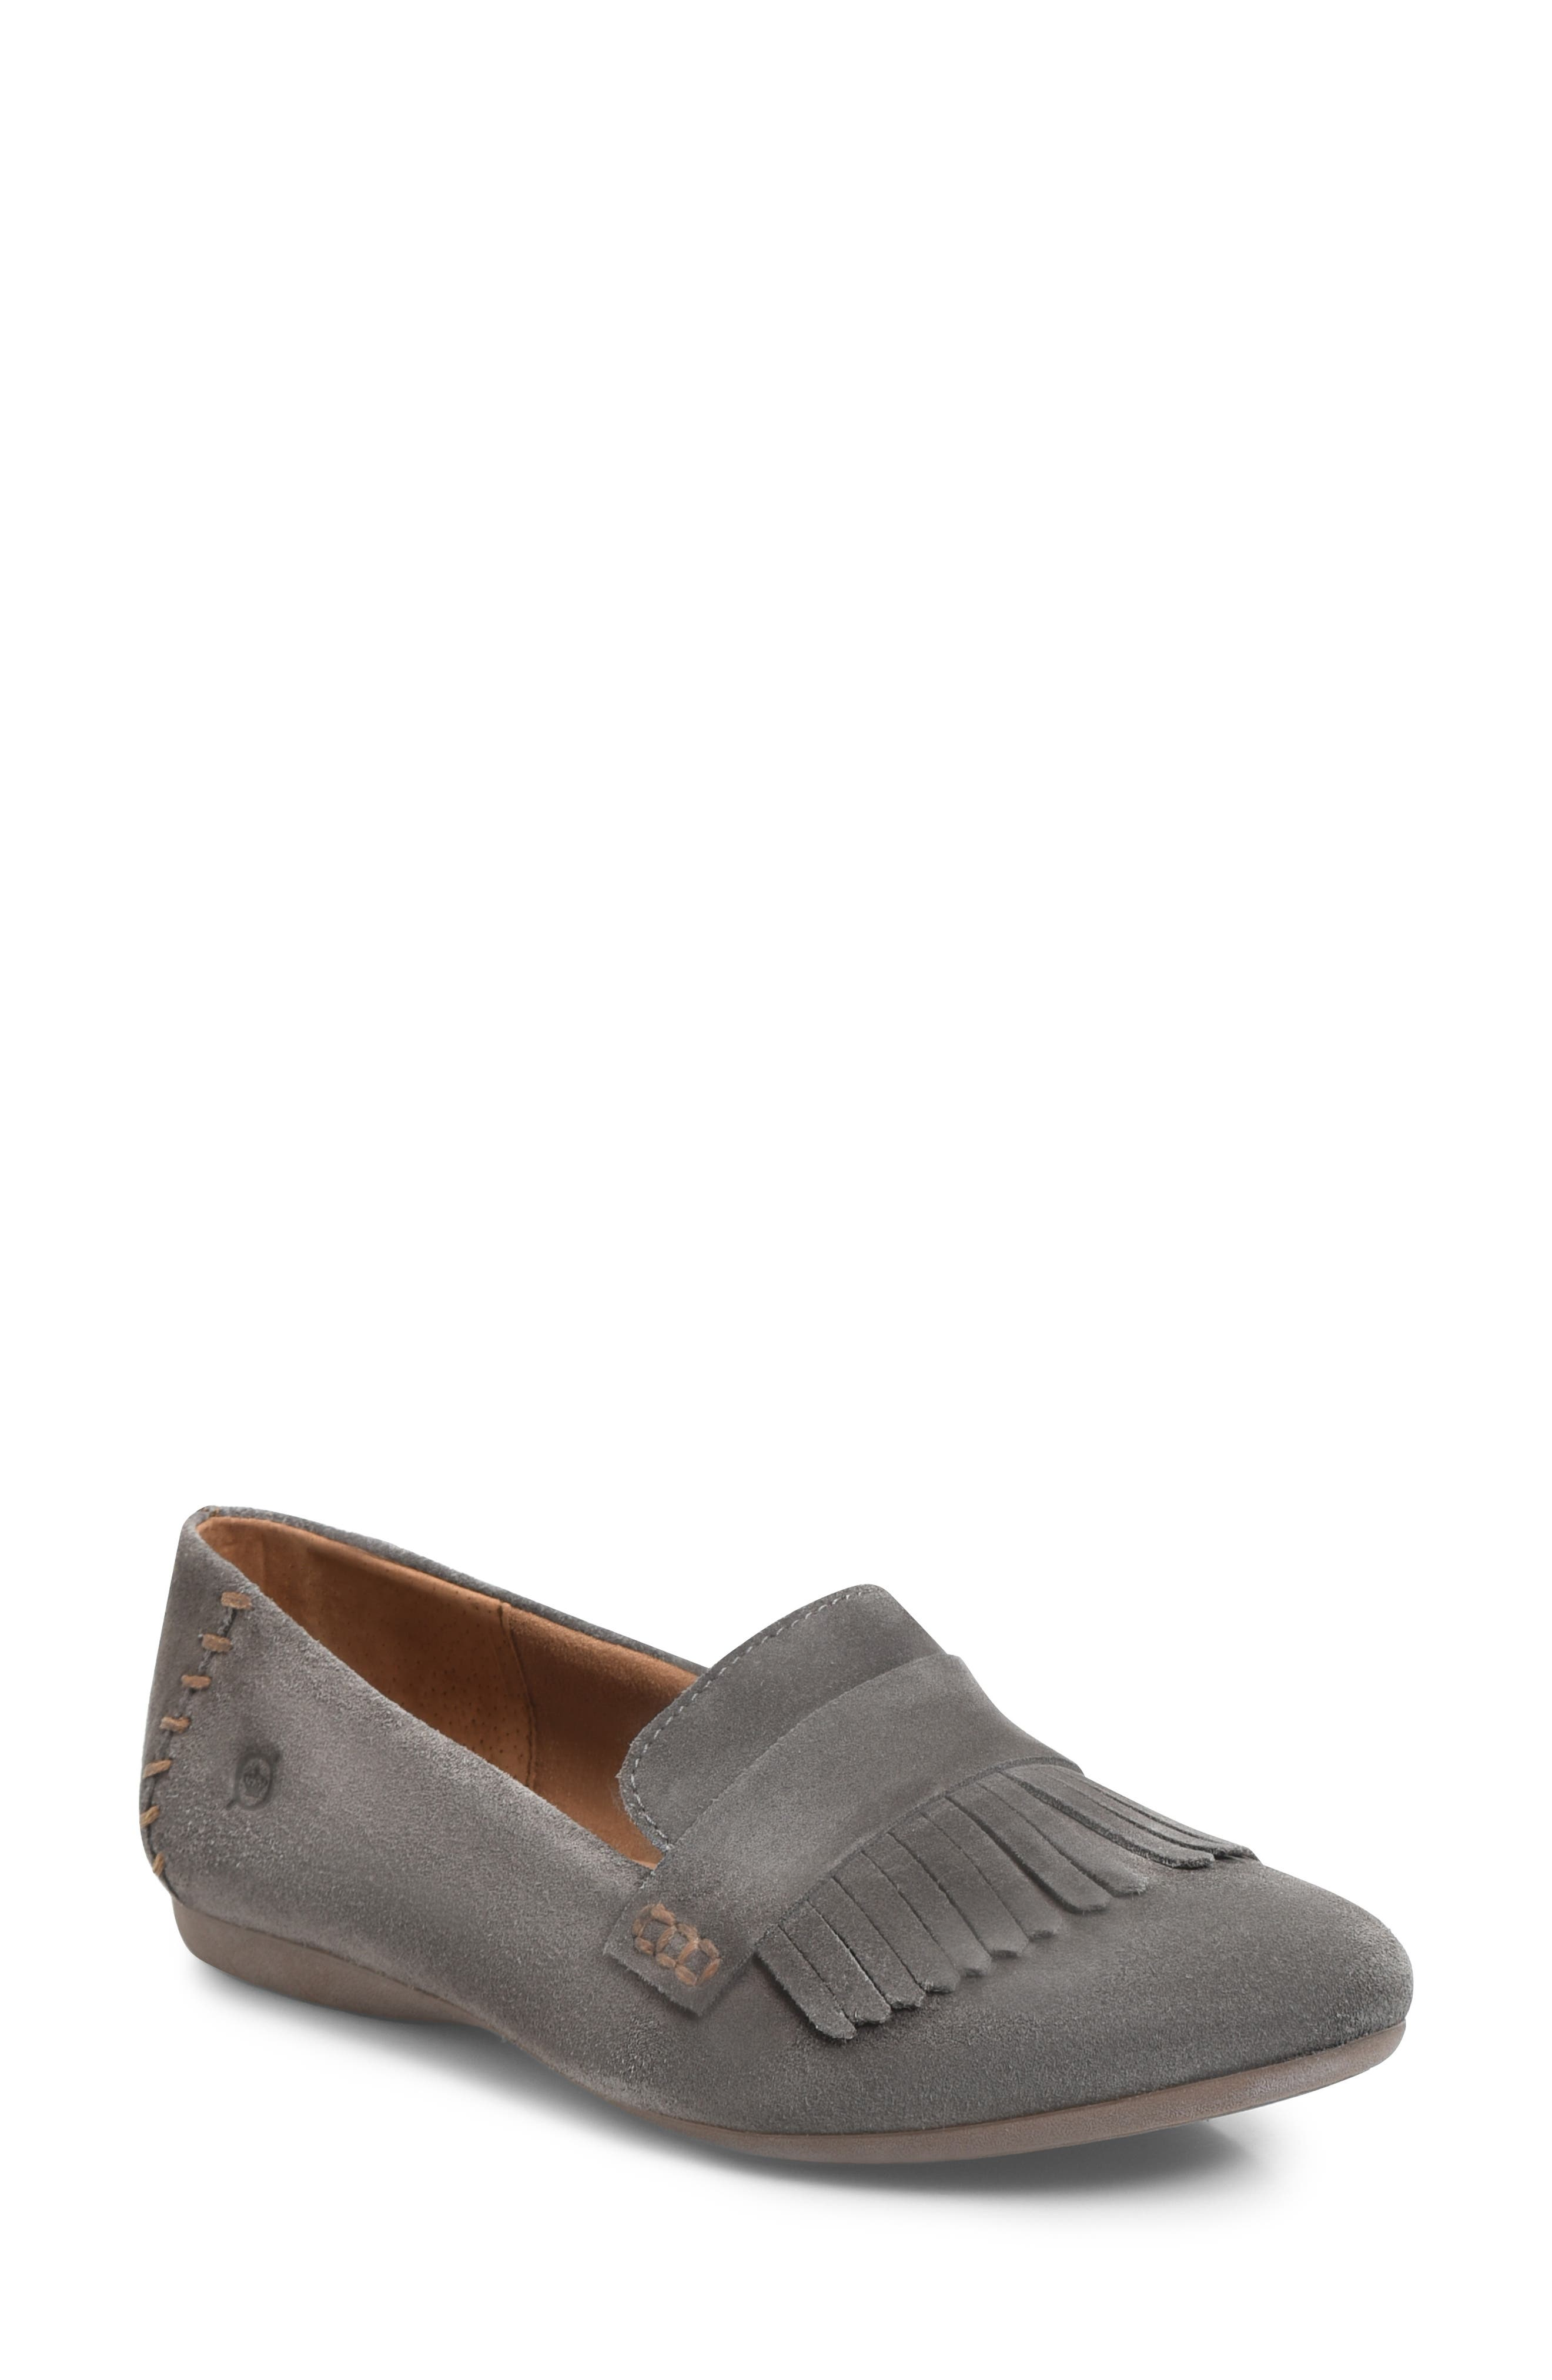 McGee Loafer, Main, color, 020